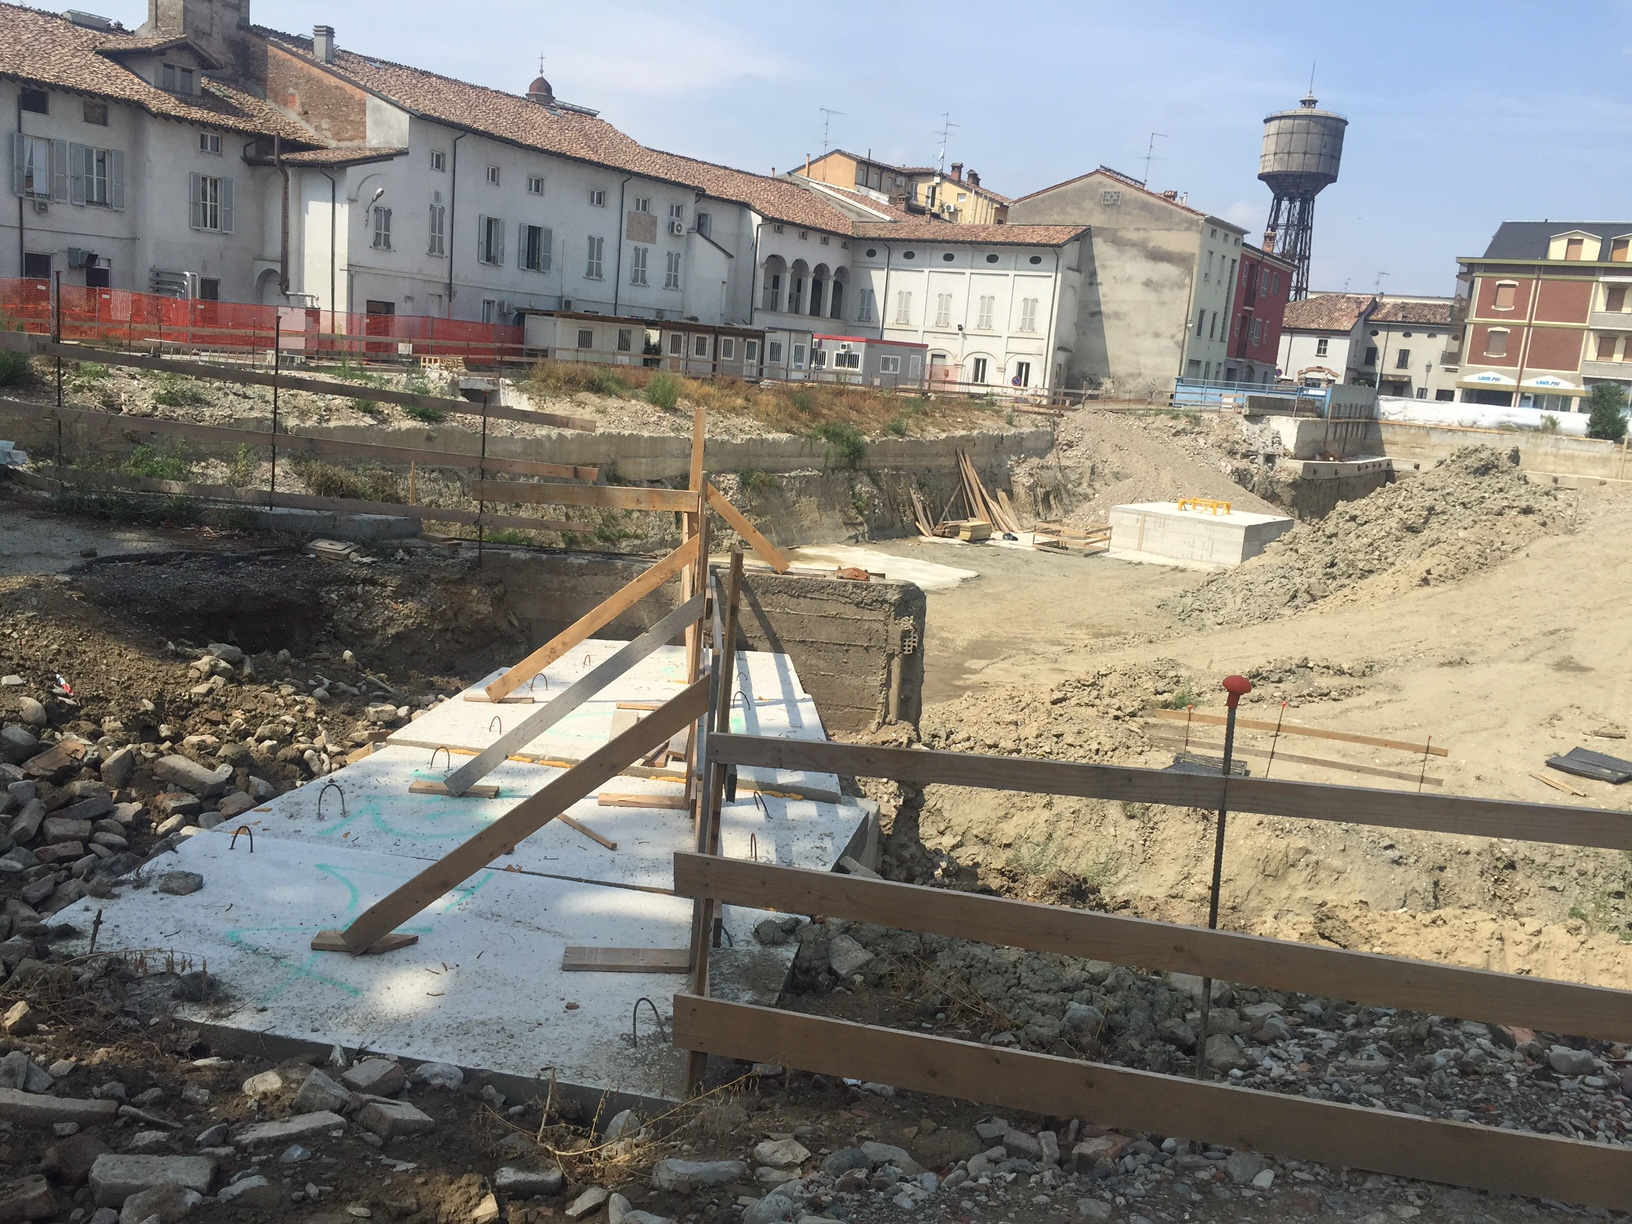 ospedale cantiere agosto